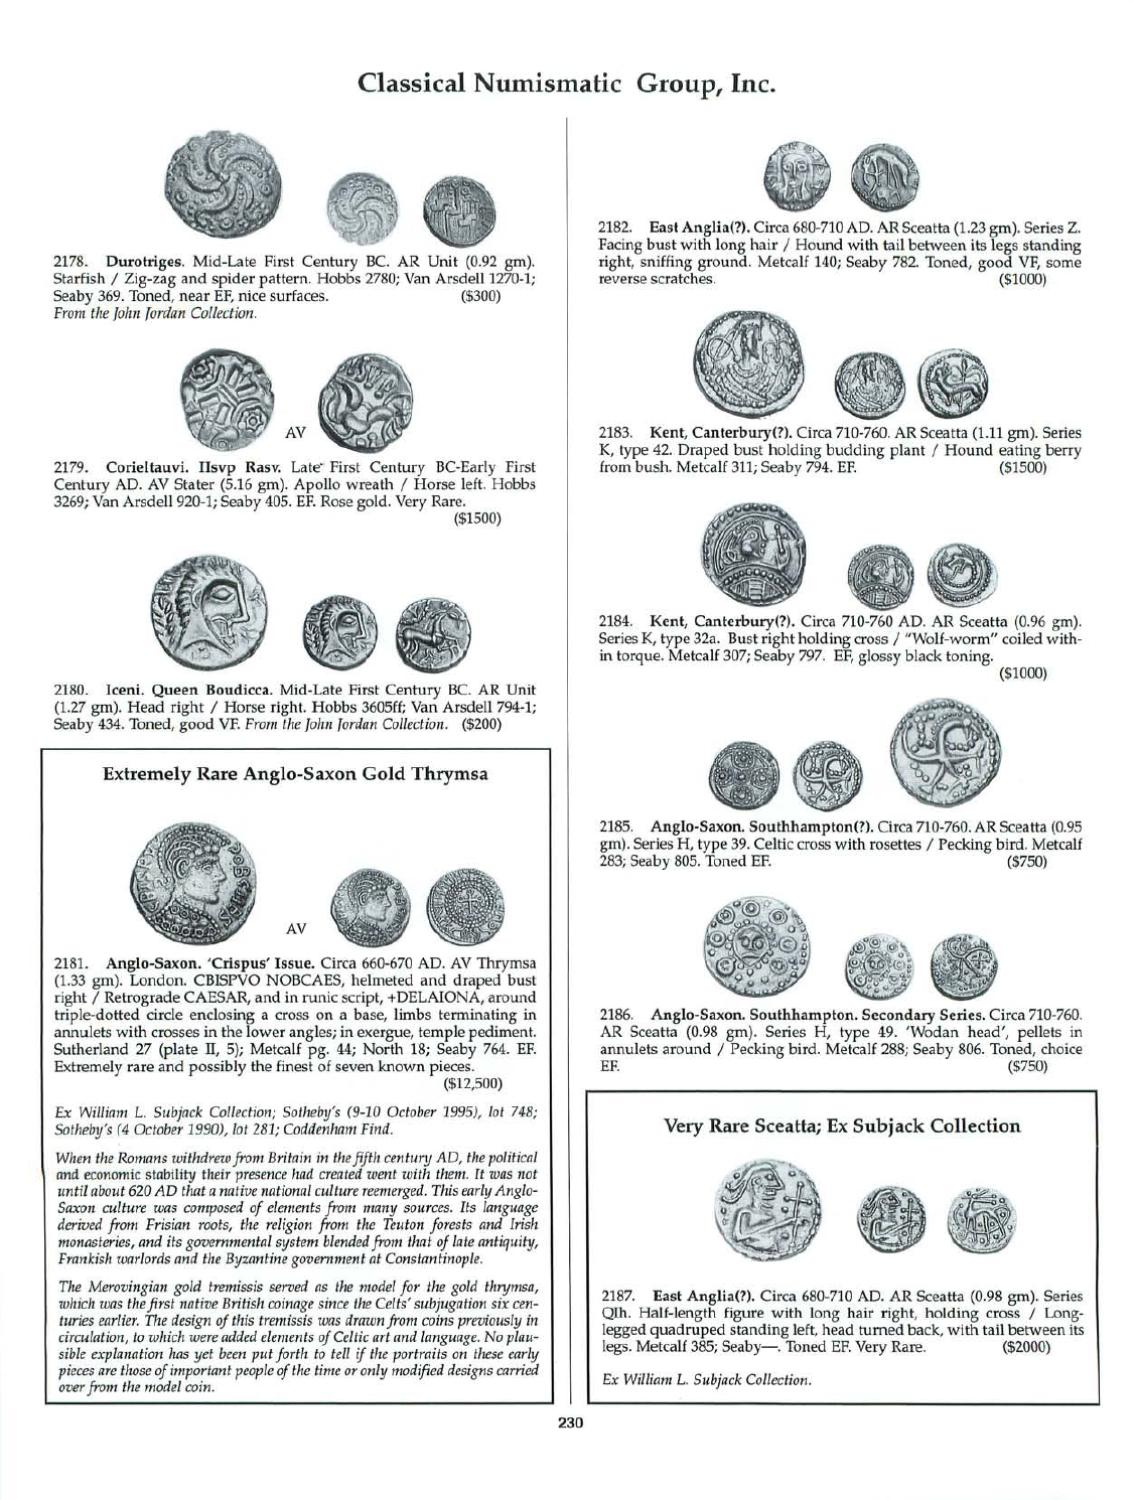 CNG_49 by Classical Numismatic Group, LLC - issuu